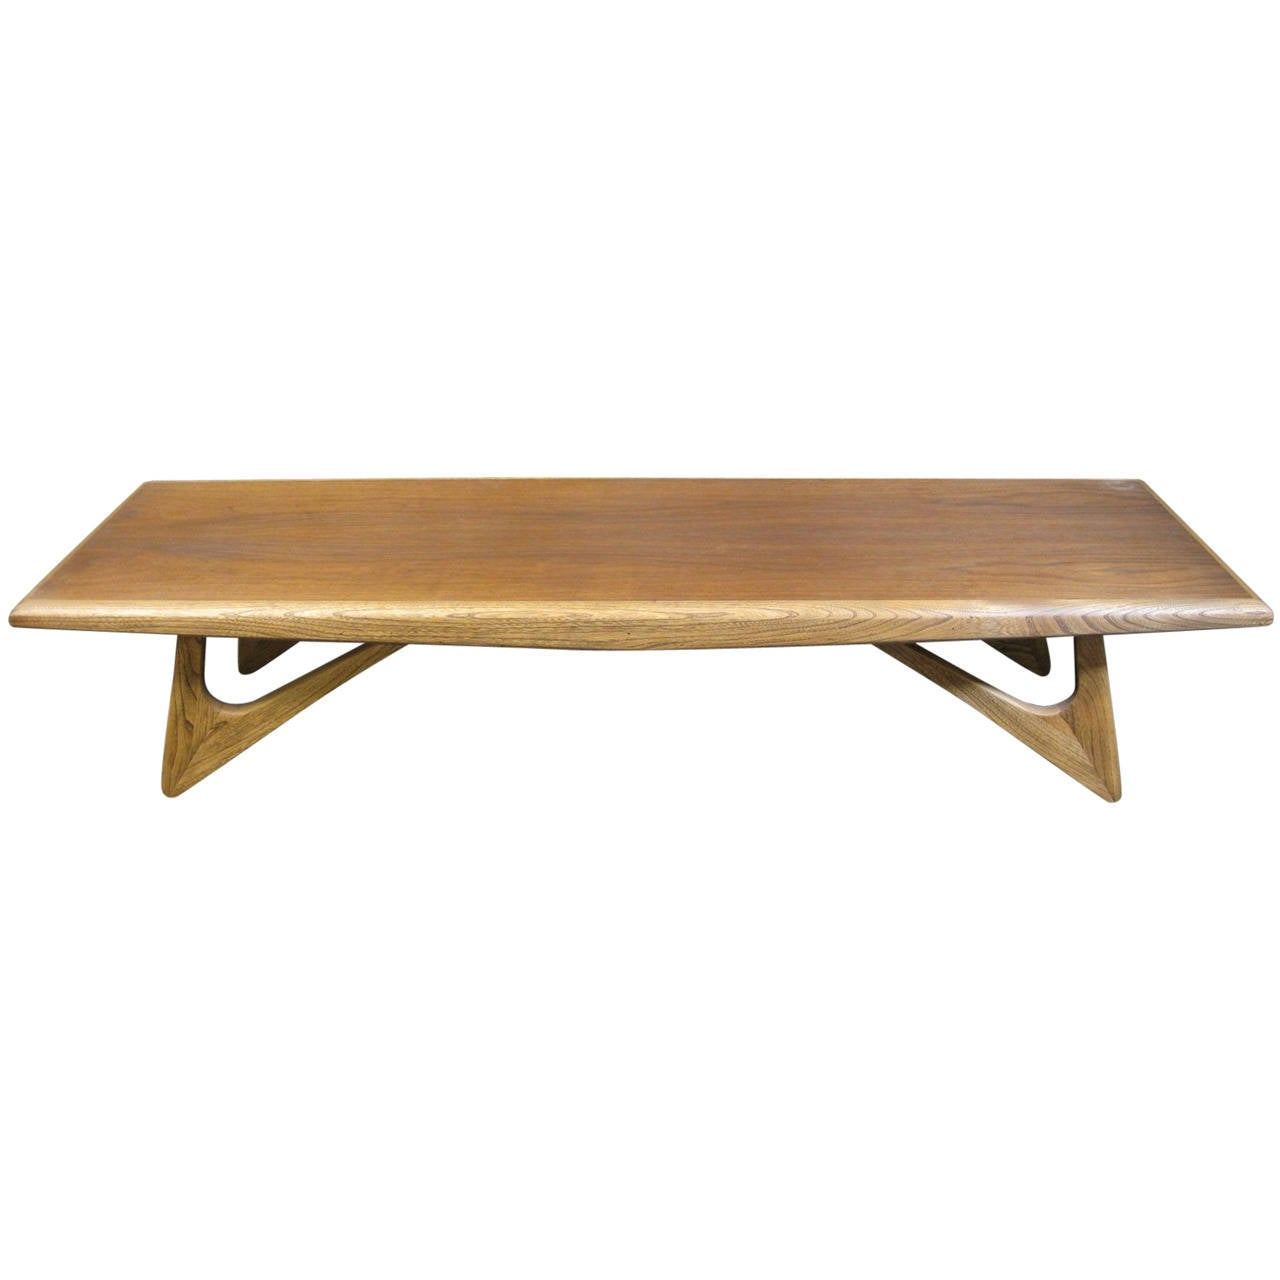 Adrian Pearsall Style Coffee Table Mid Century Modern at